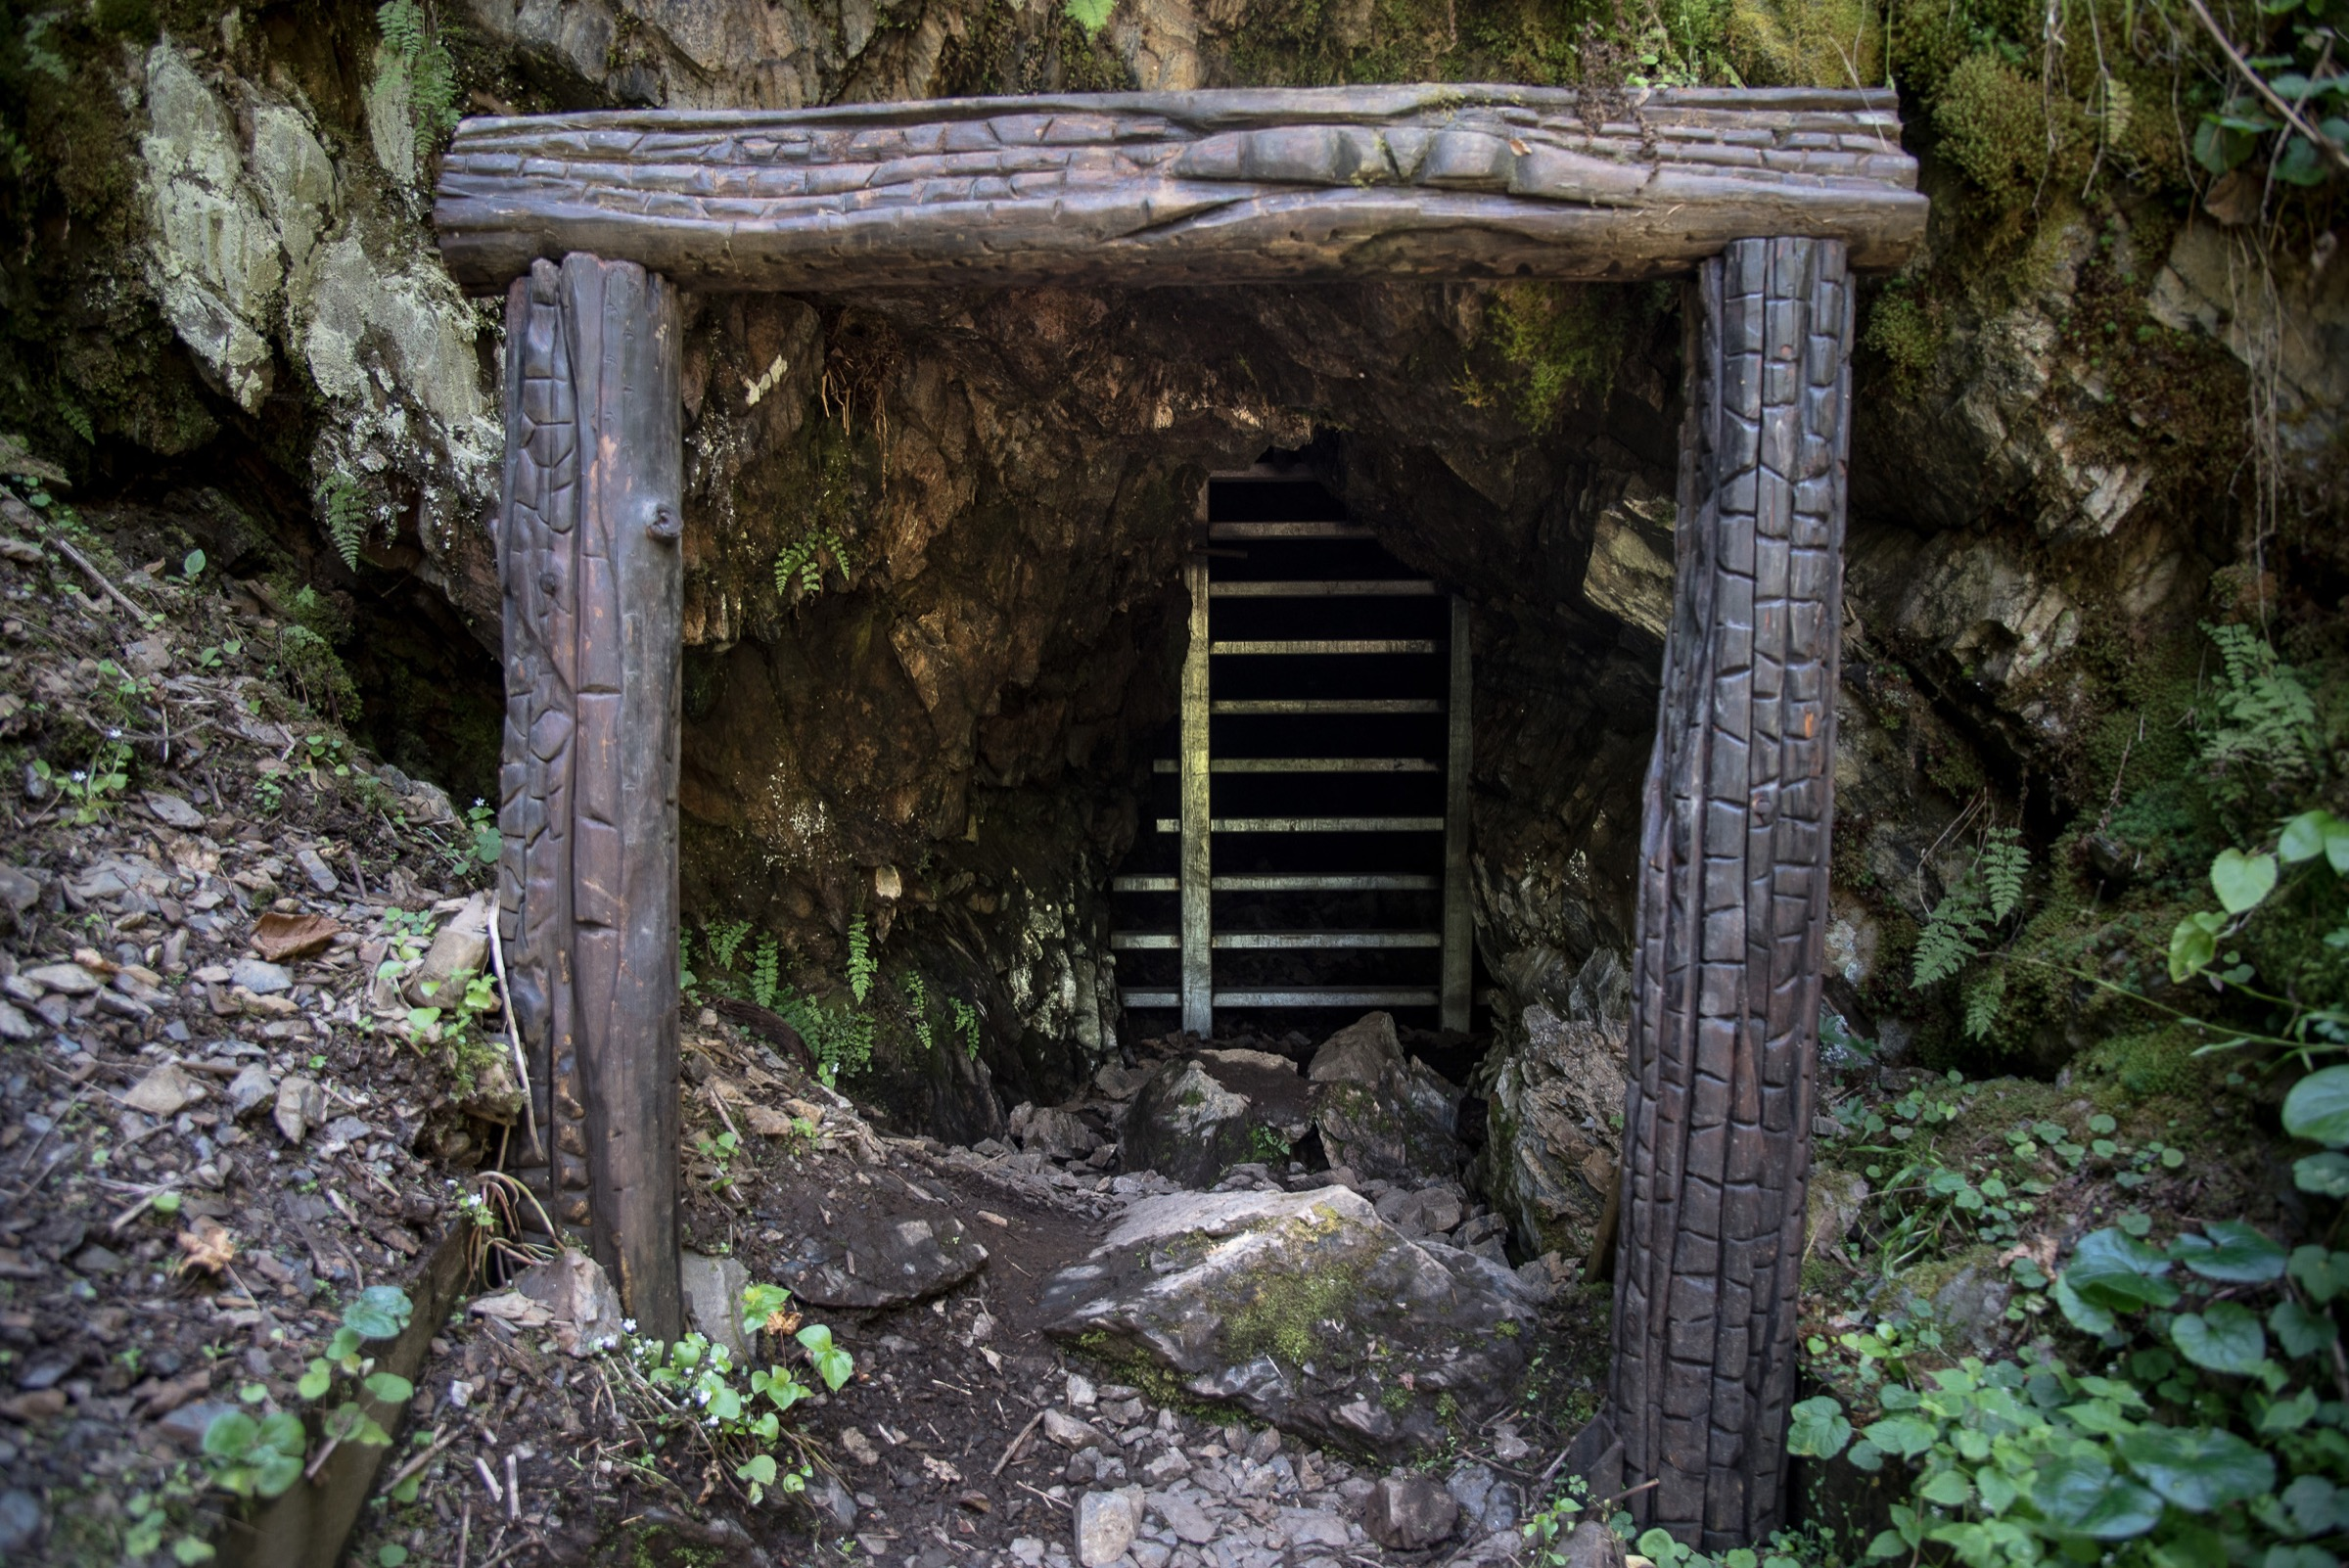 The mine shaft in which Ed Pulaski led his fire crew to escape the big burn outside of Wallace, Idaho in 1910. Photograph by Michael Kodas